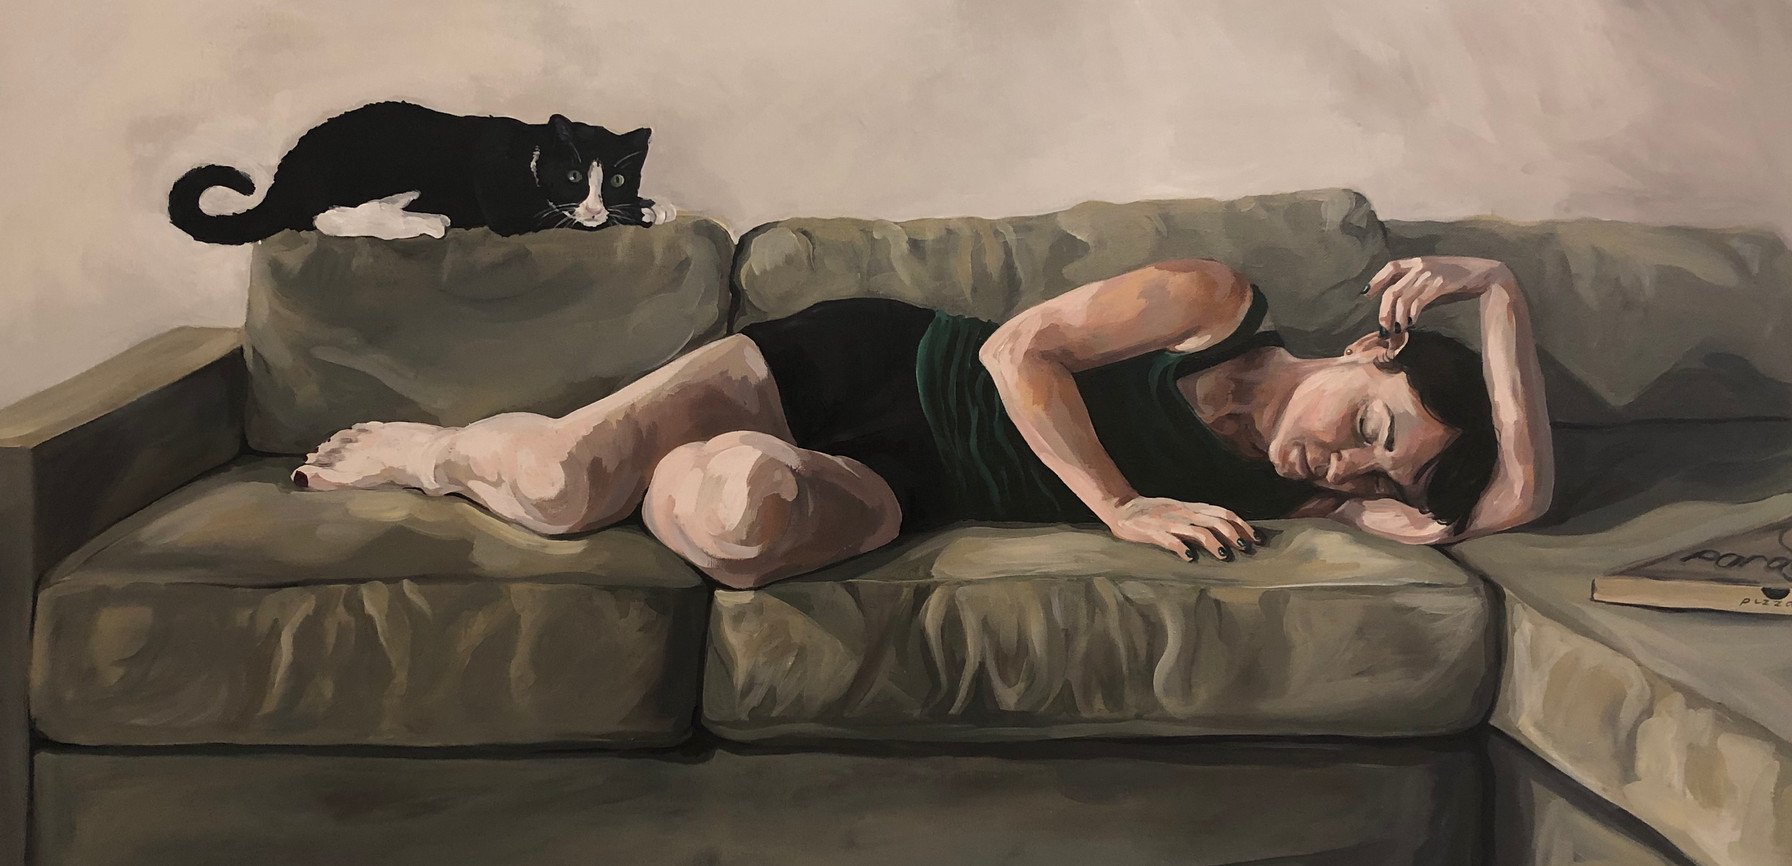 It was a long day, 2019, Acrylic on canvas, 46 x 91 cm. *